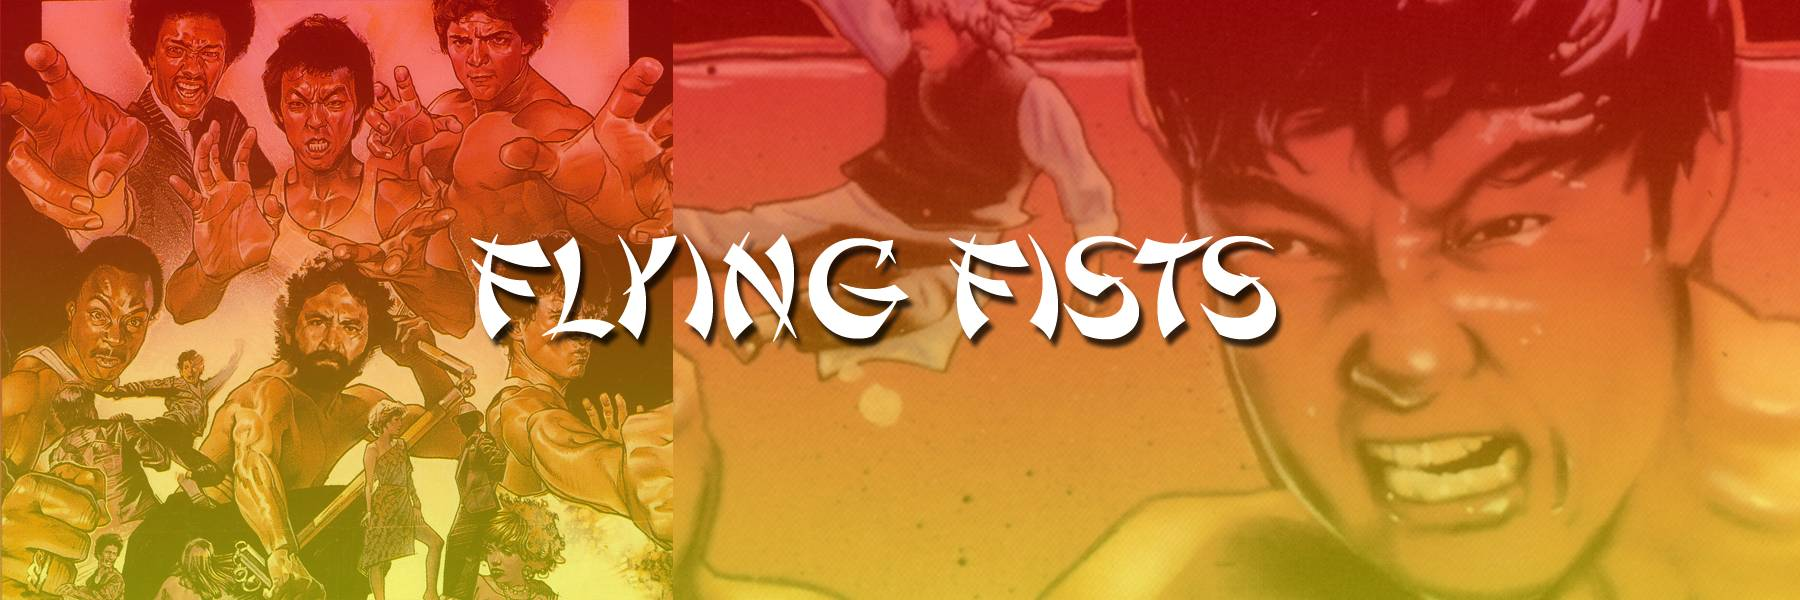 Flying Fists